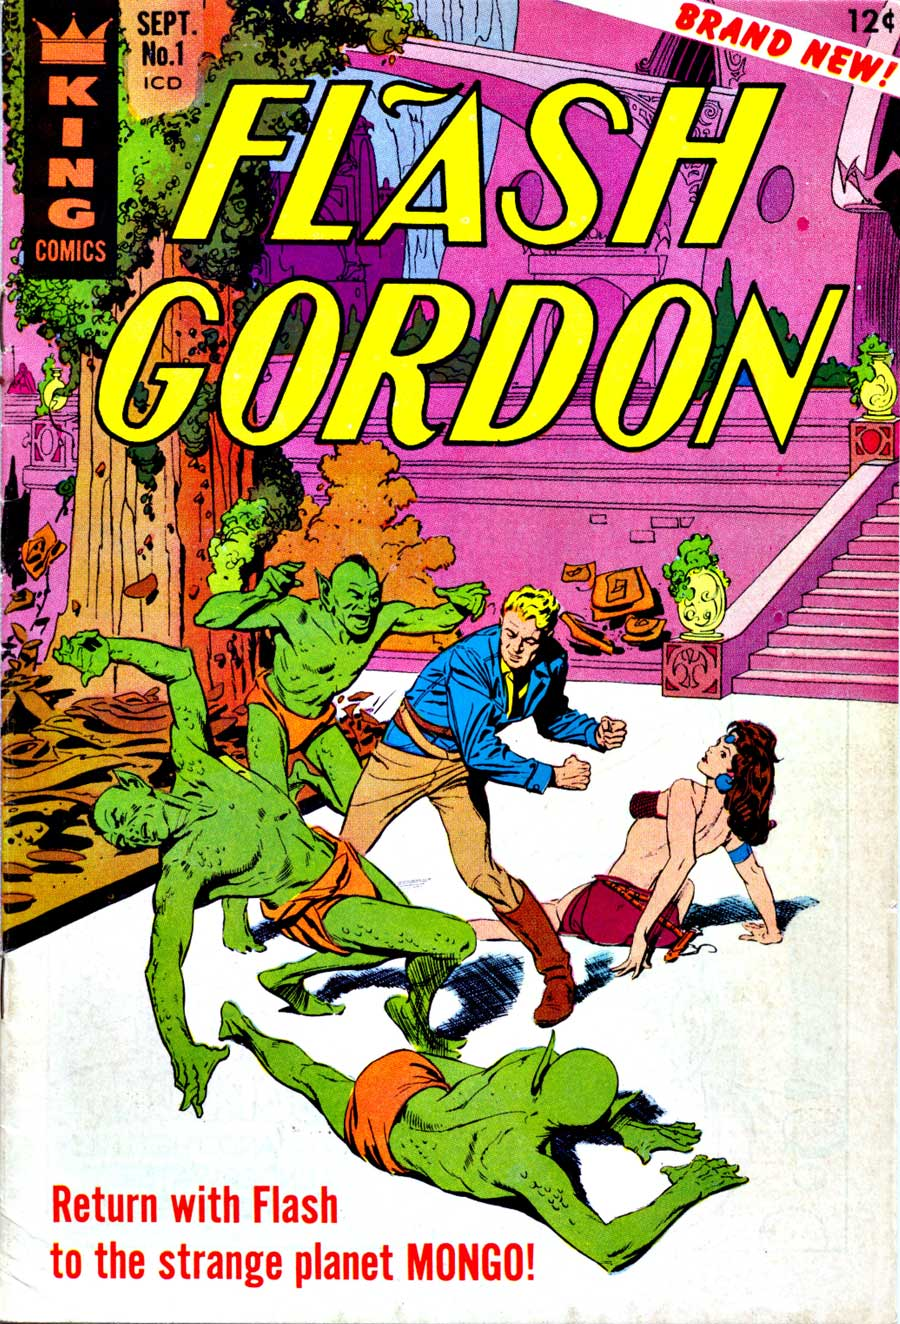 Flash Gordon v4 #1 1960s silver age science fiction comic book cover art by Al Williamson